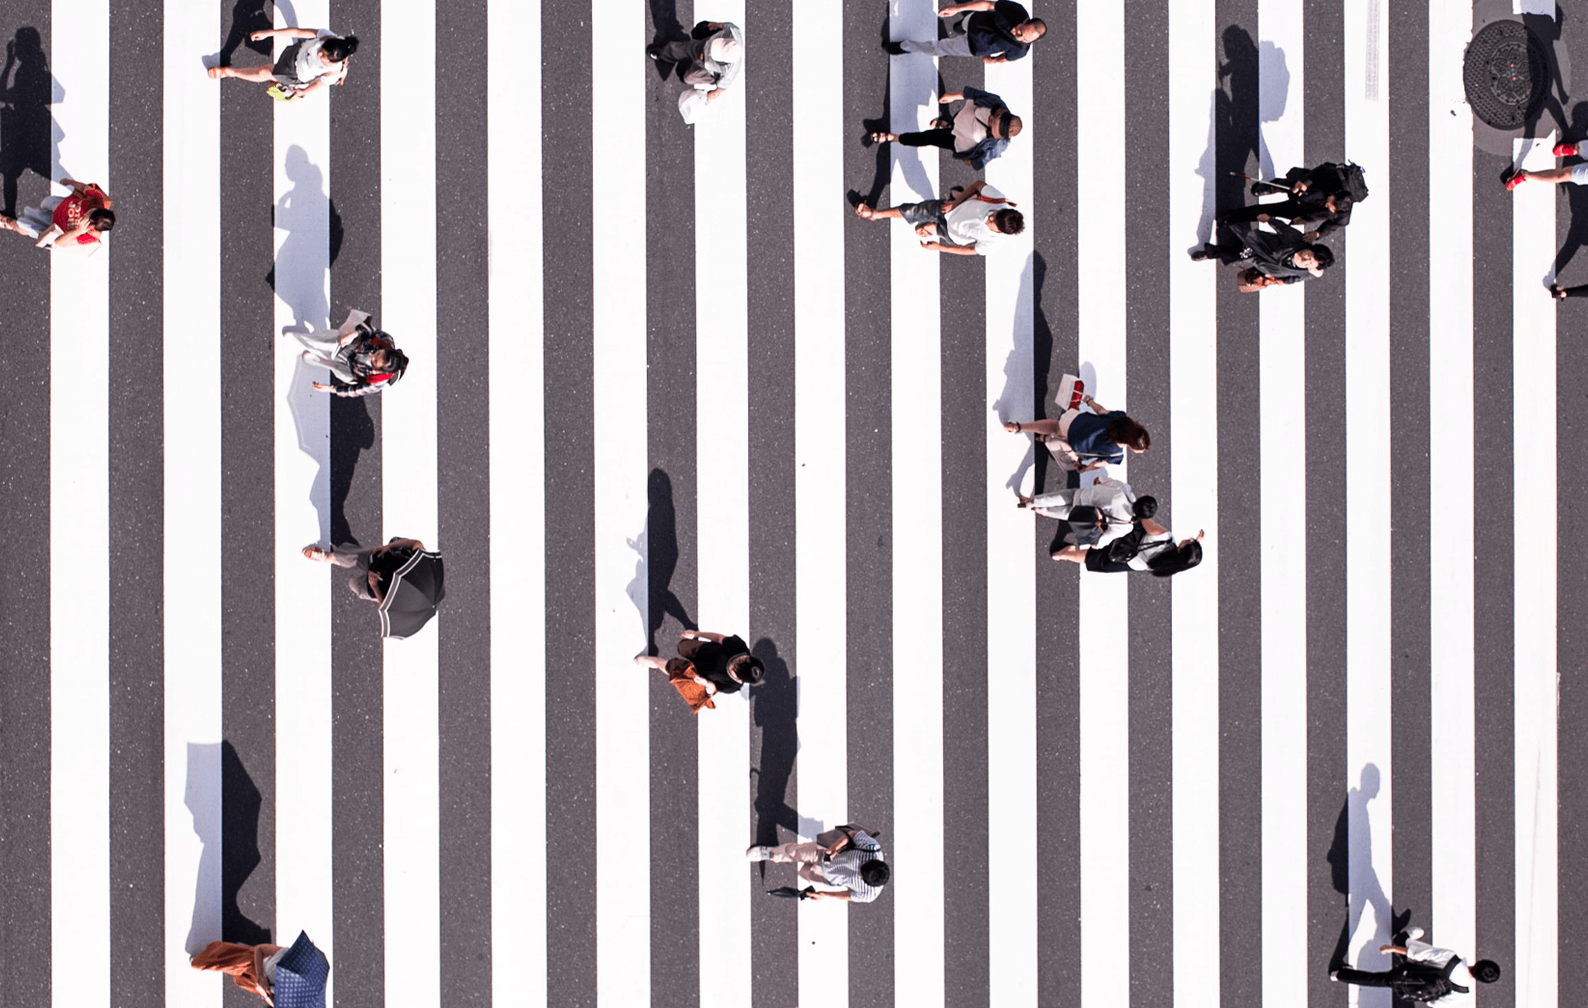 People crossing the road in different directions